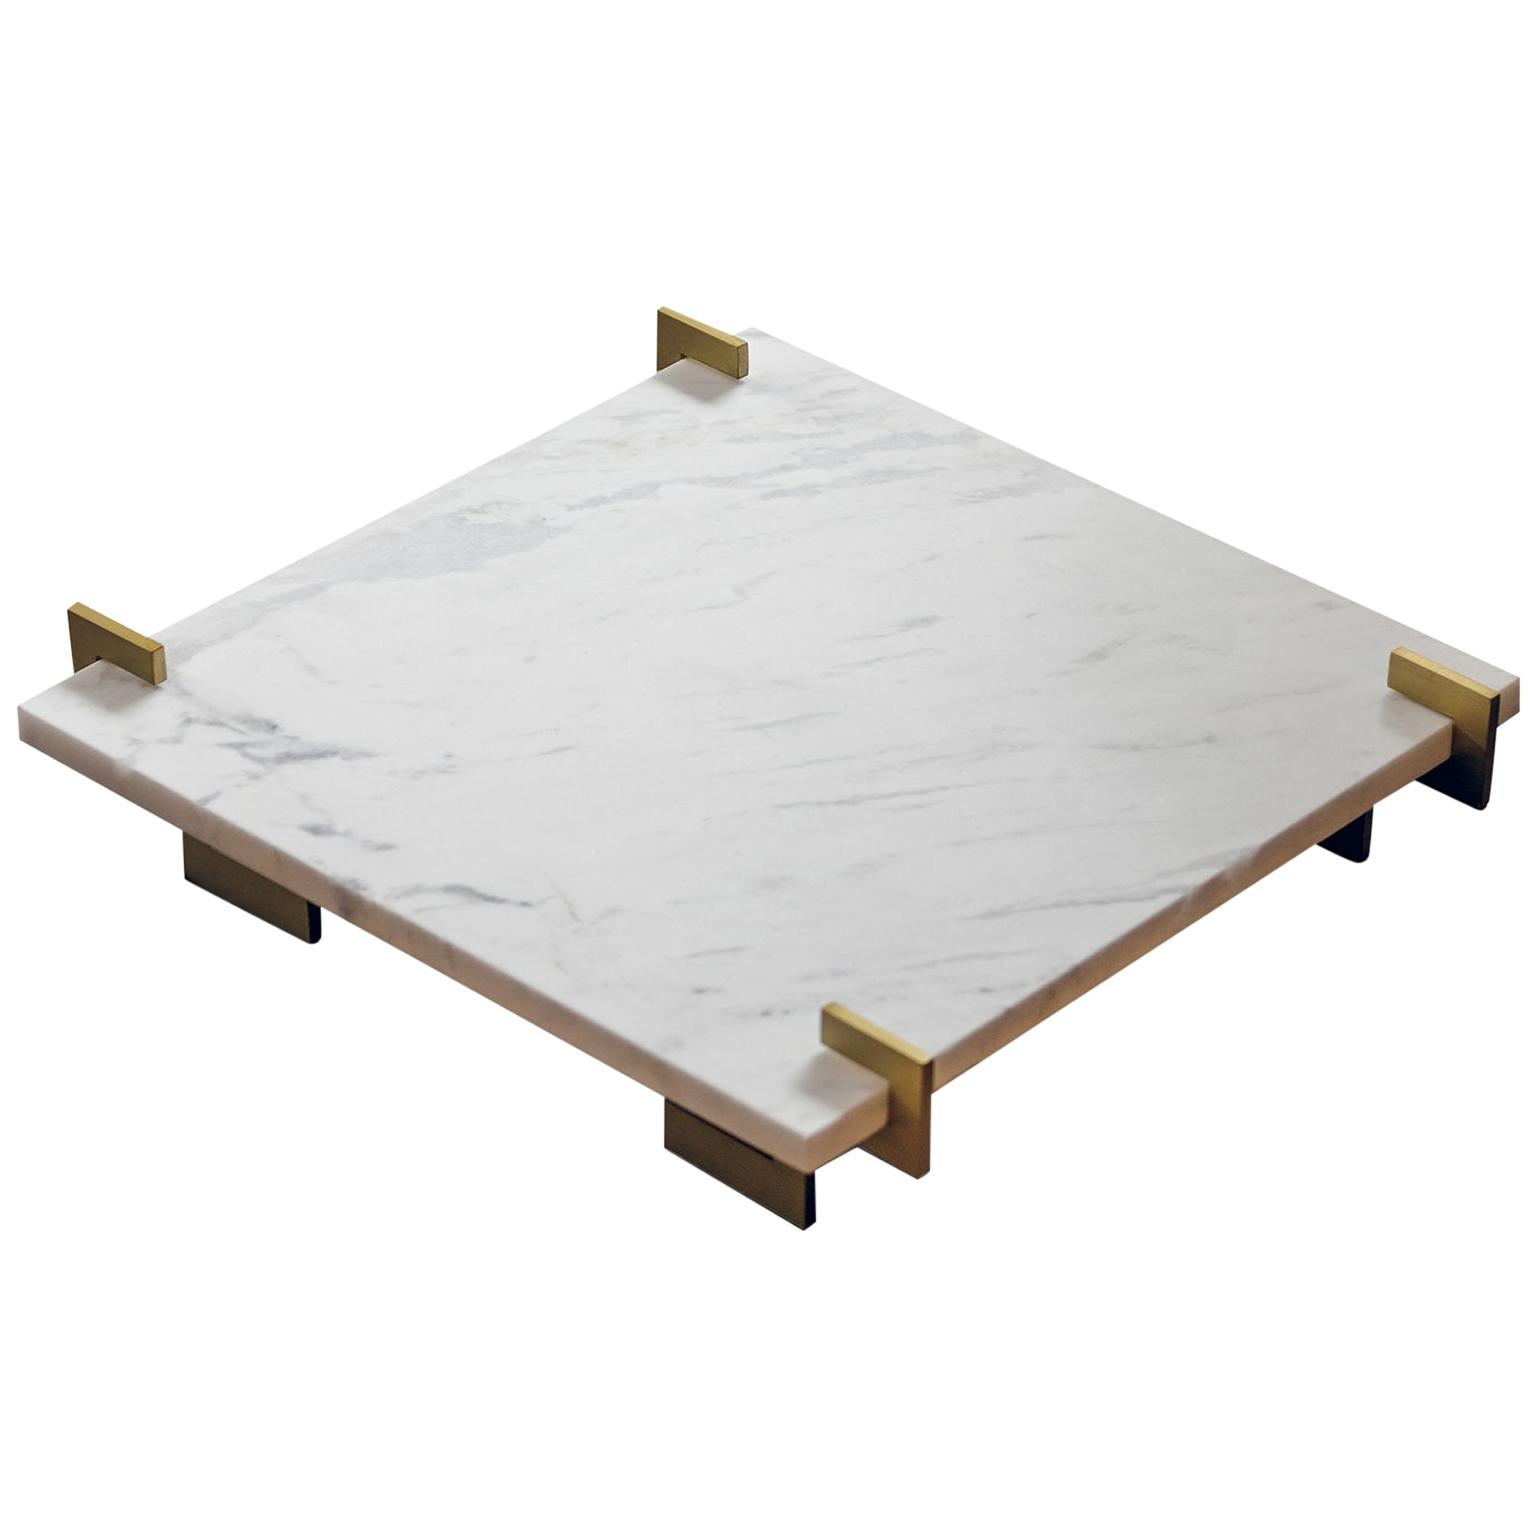 """Contemporary Handcrafted Square Tray """"Aeolos"""" in Marble and Brass by Anaktae"""